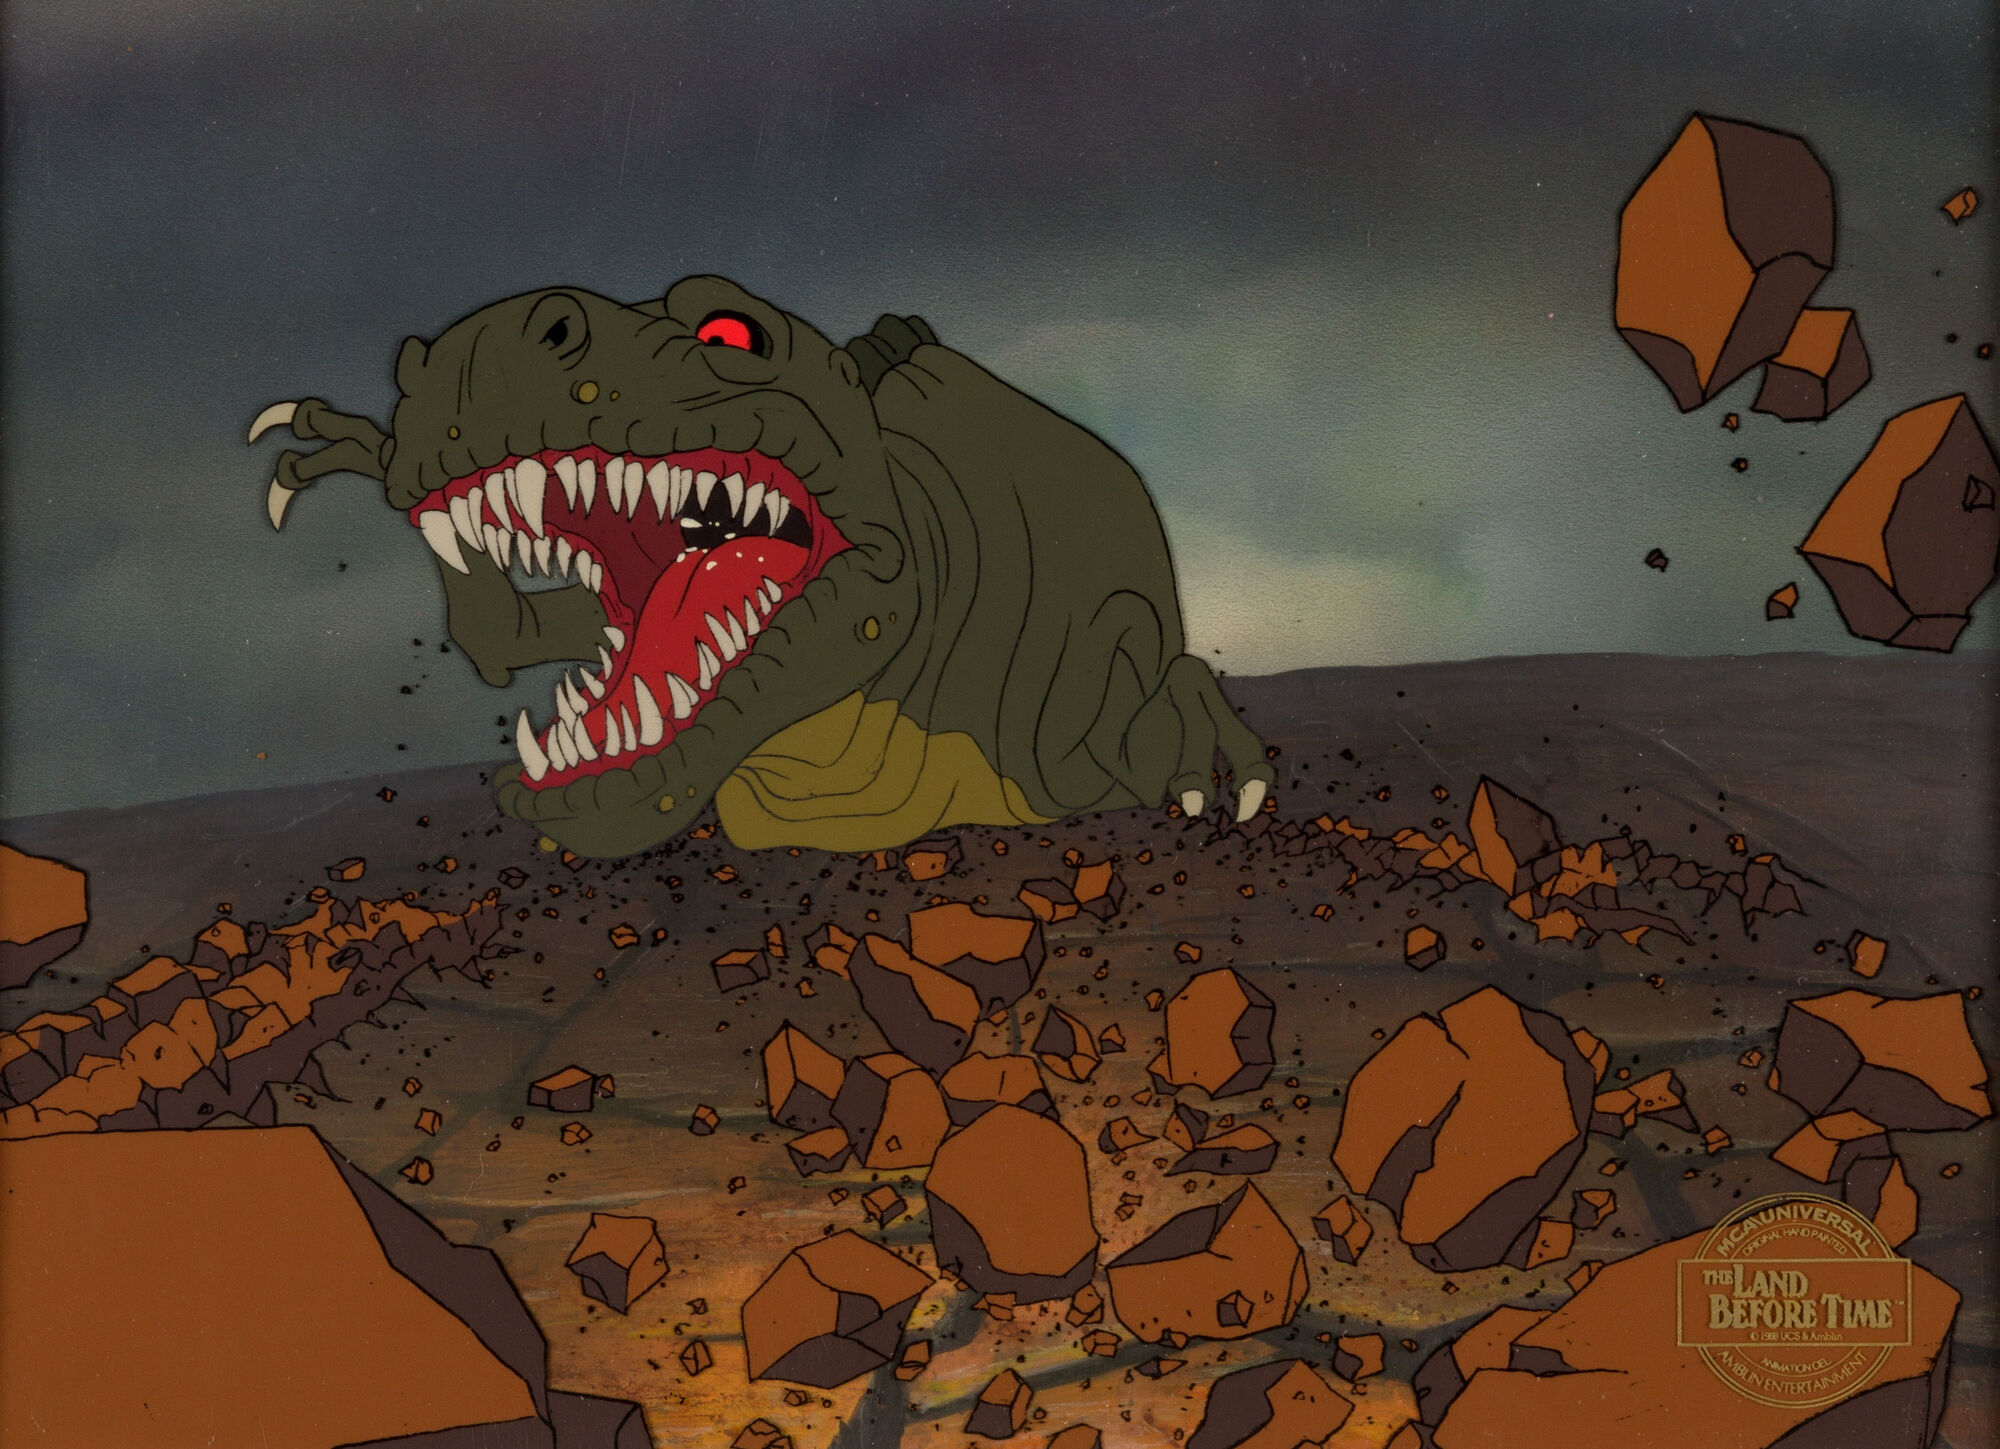 image the land before time sharptooth production cel setup with